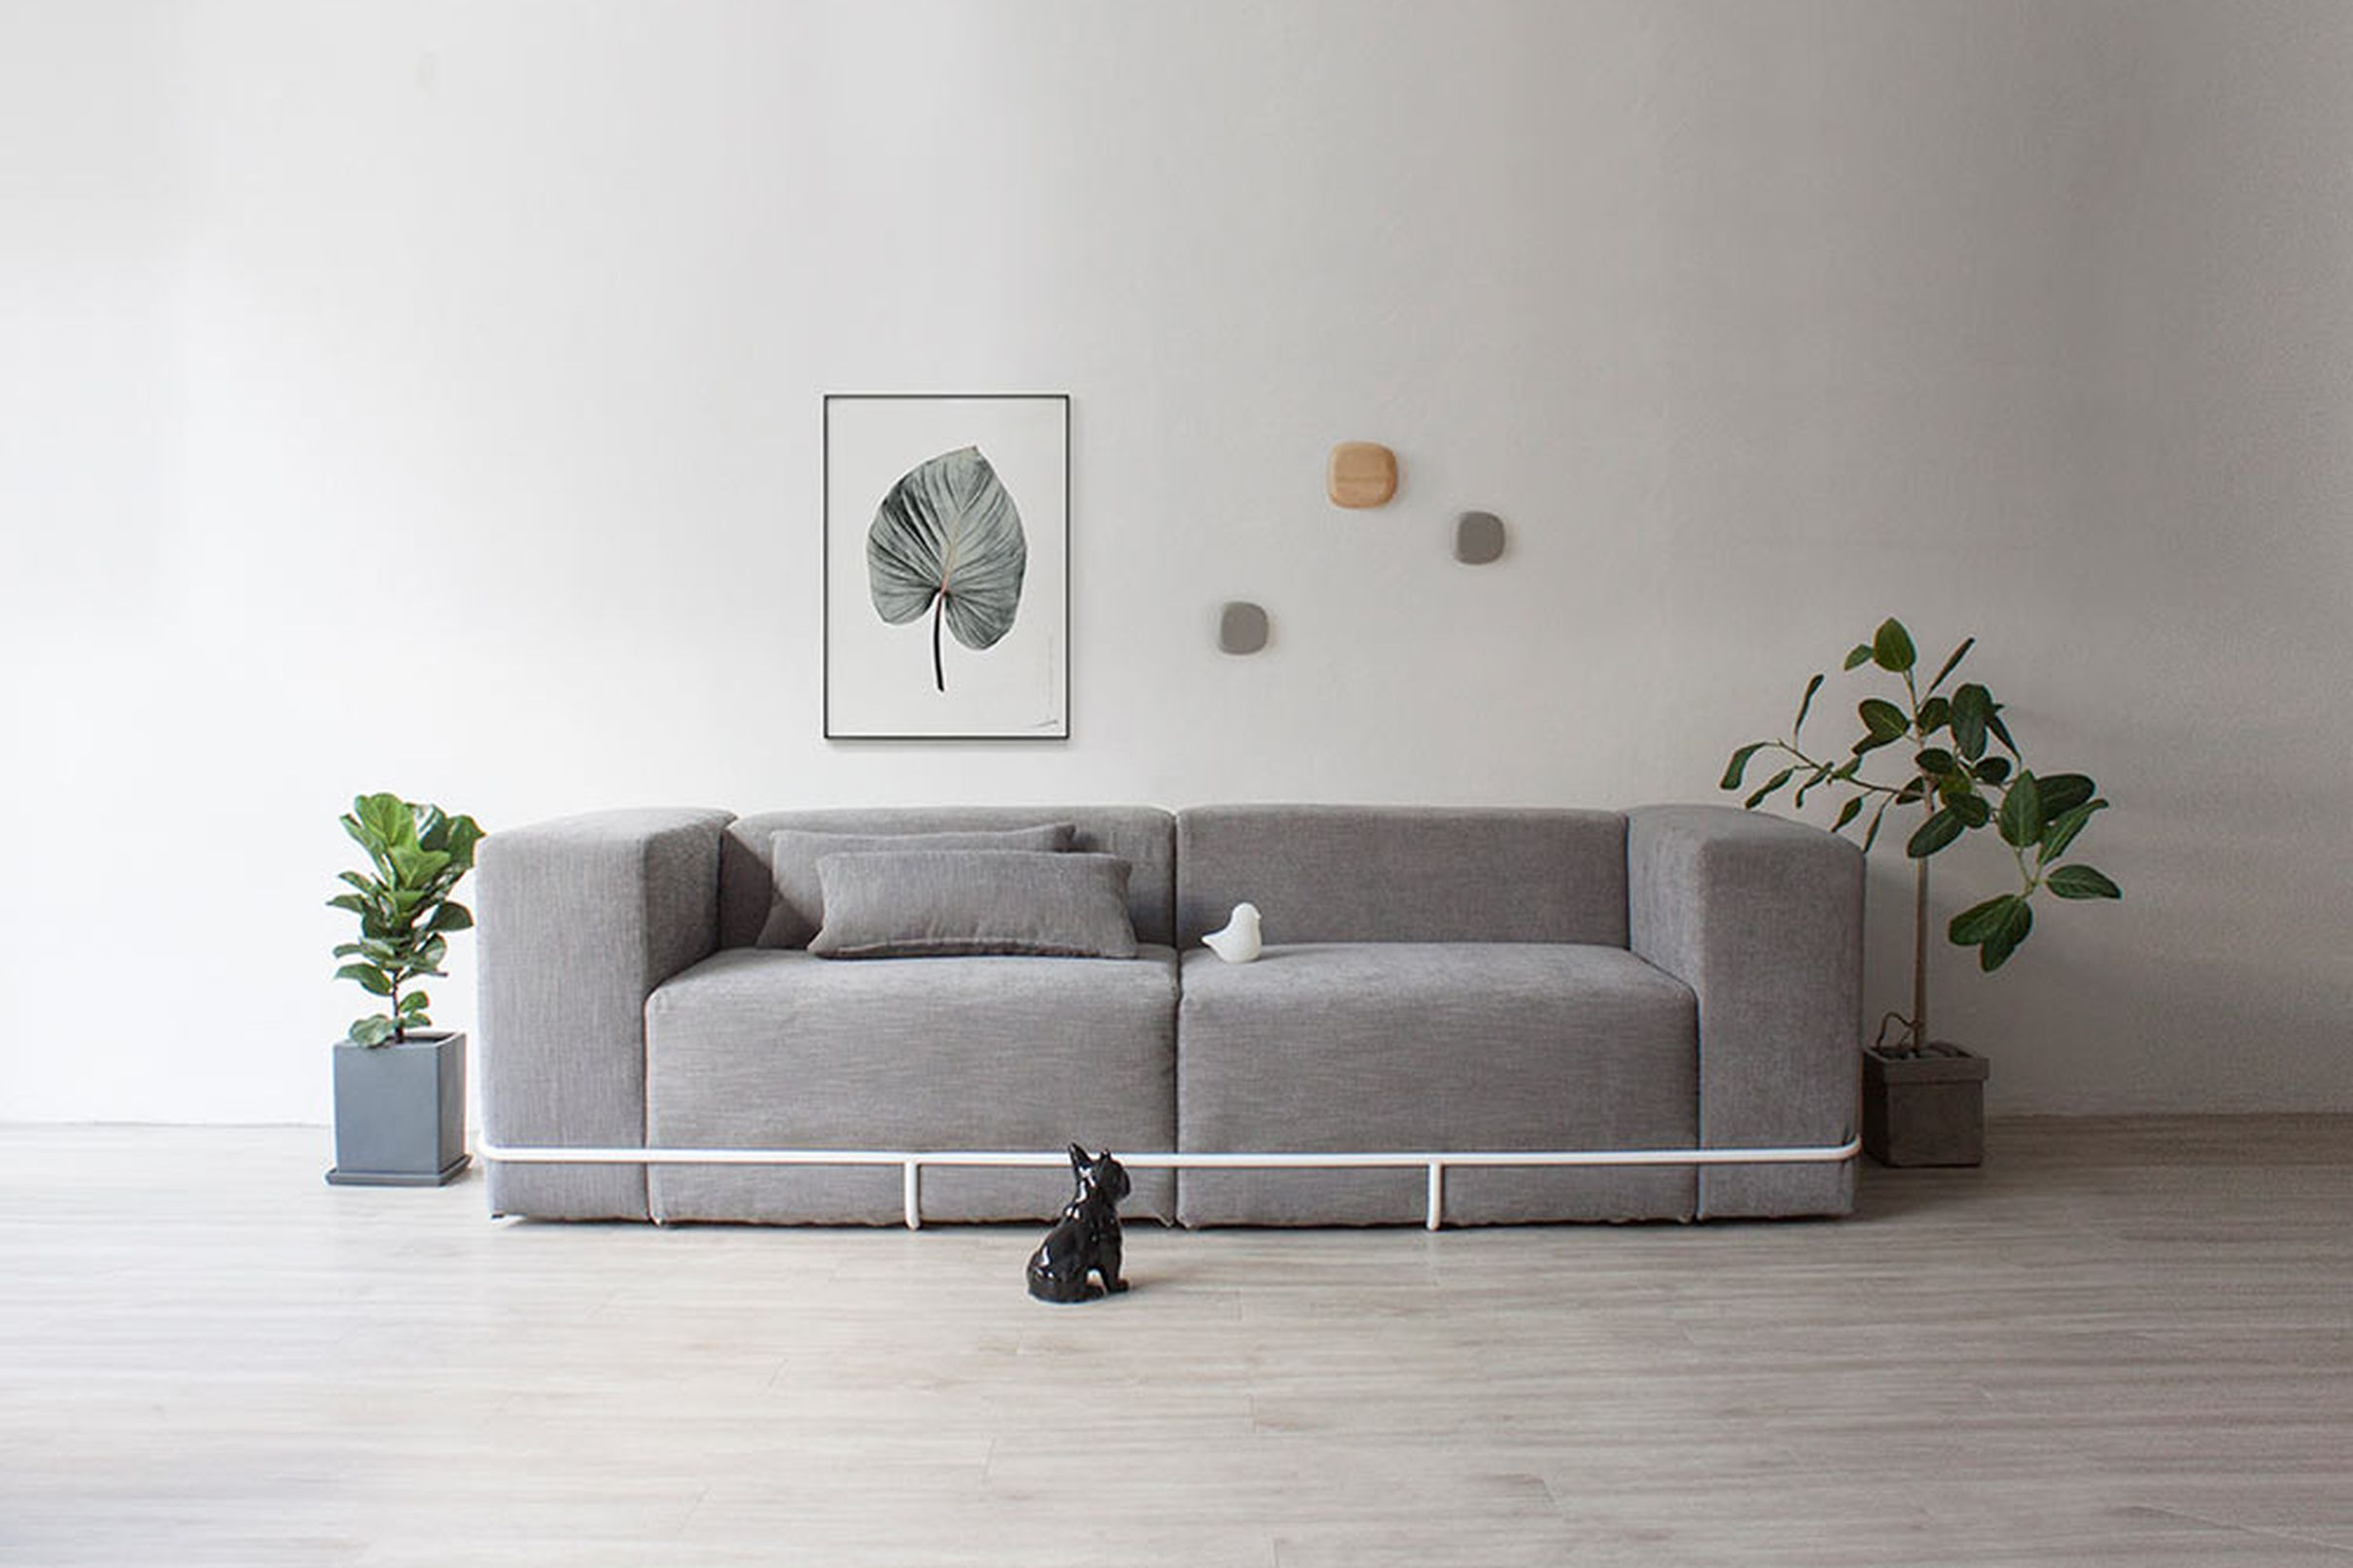 Sensational Minimalist Modular Sofa Combines Simple Steel Frame And Gmtry Best Dining Table And Chair Ideas Images Gmtryco